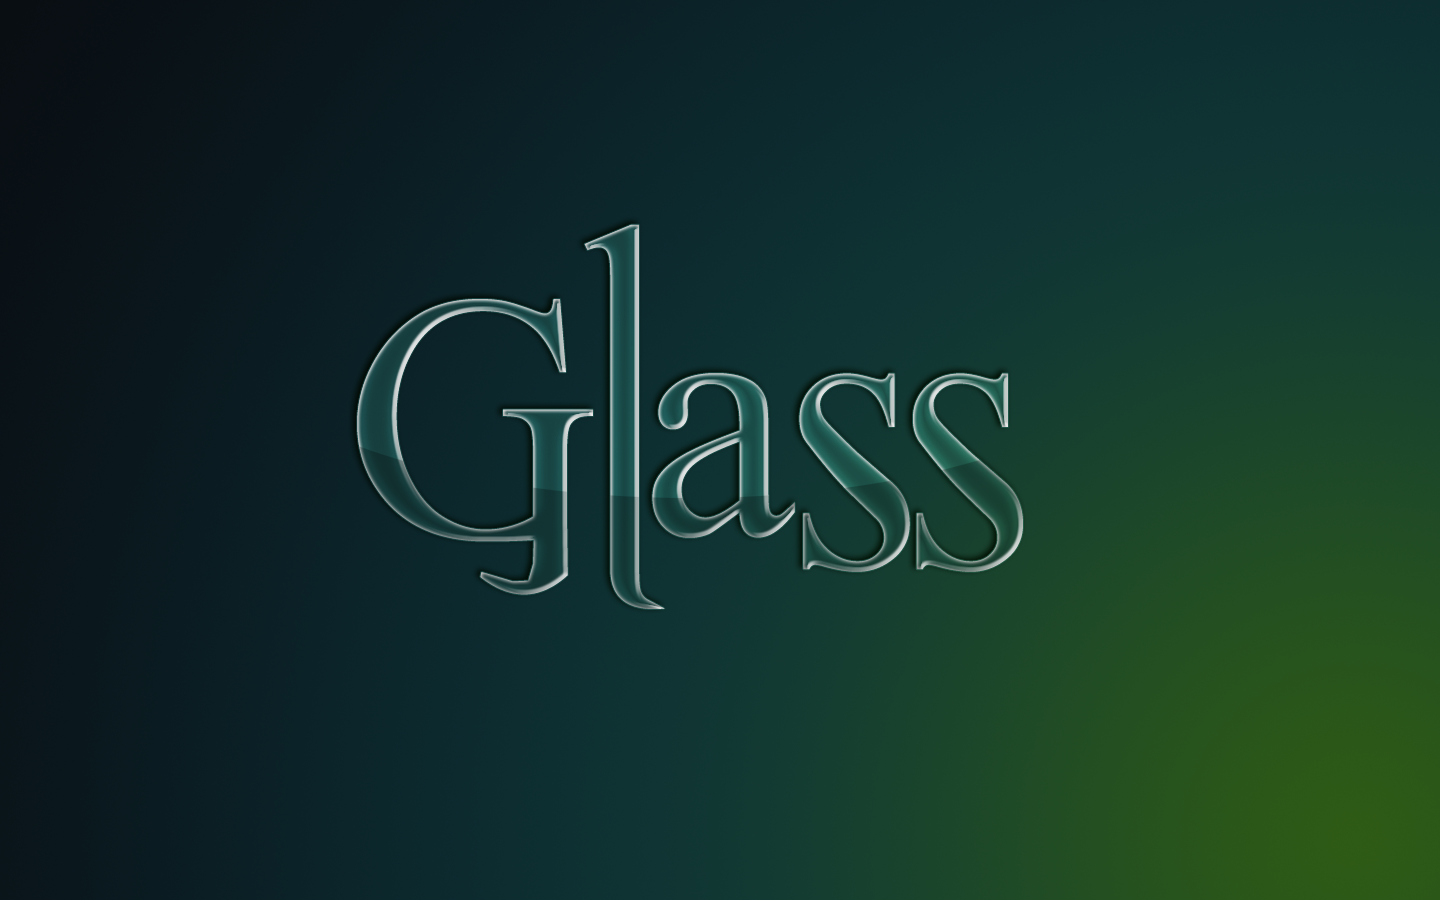 13 Glass PSD Download Images